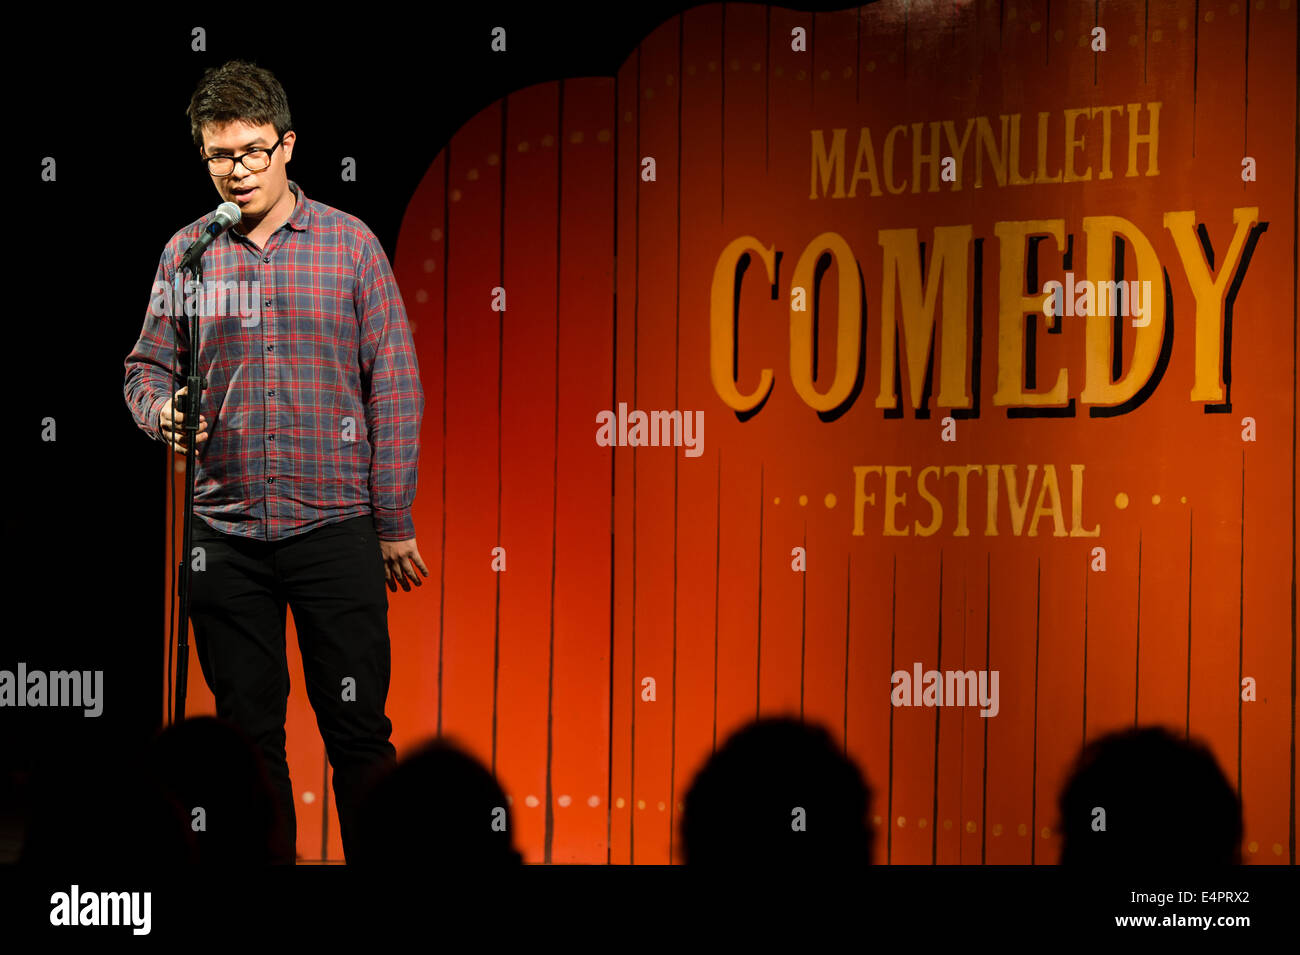 PHIL WANG performing at the fifth annual Machynlleth Comedy Festival. - Stock Image